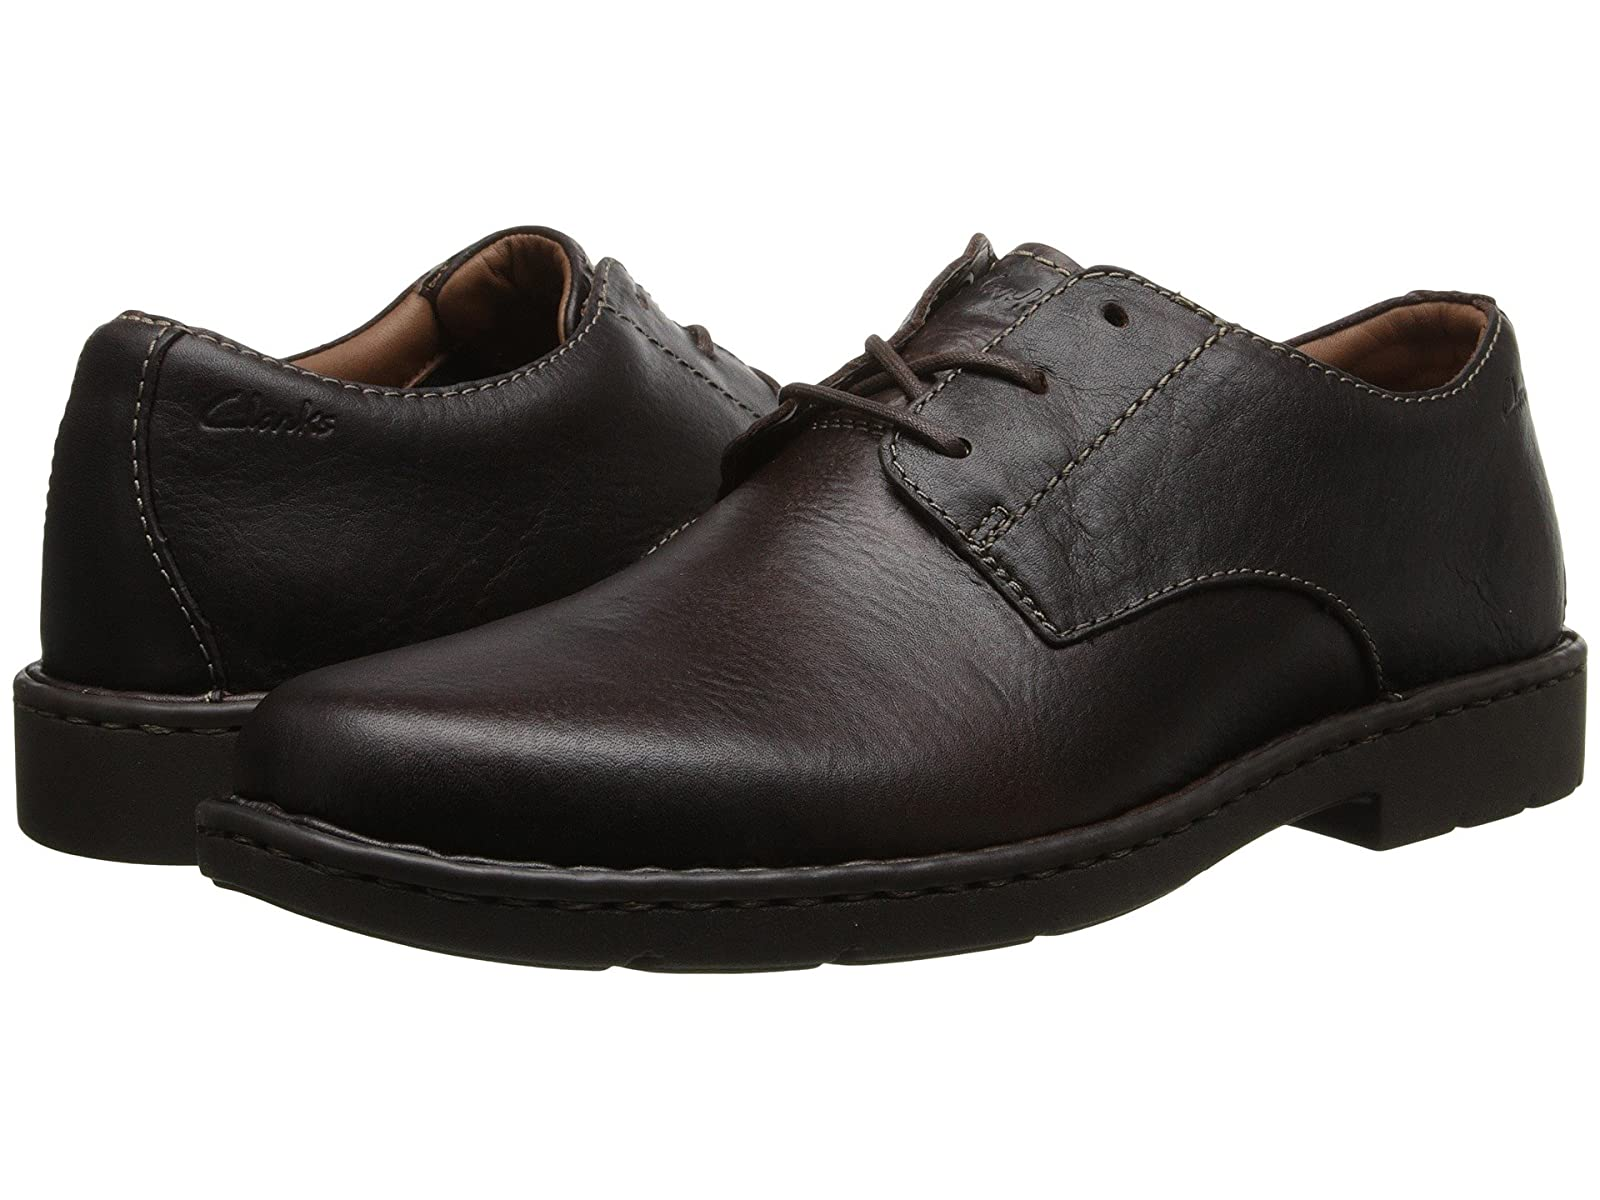 Clarks Stratton WayCheap and distinctive eye-catching shoes